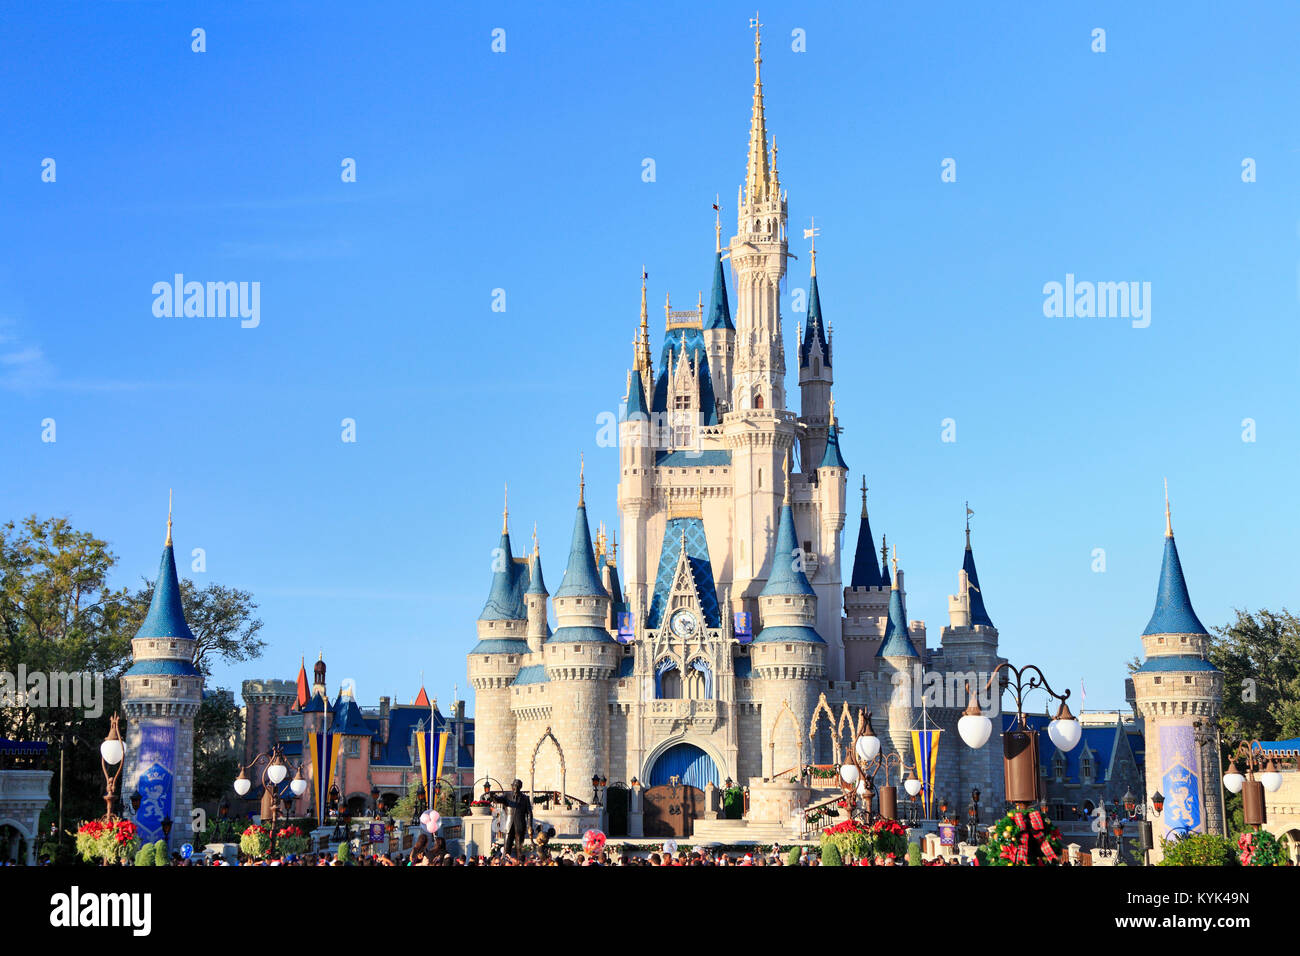 Château de Cendrillon au Magic Kingdom, Disney, Orlando, Floride Photo Stock